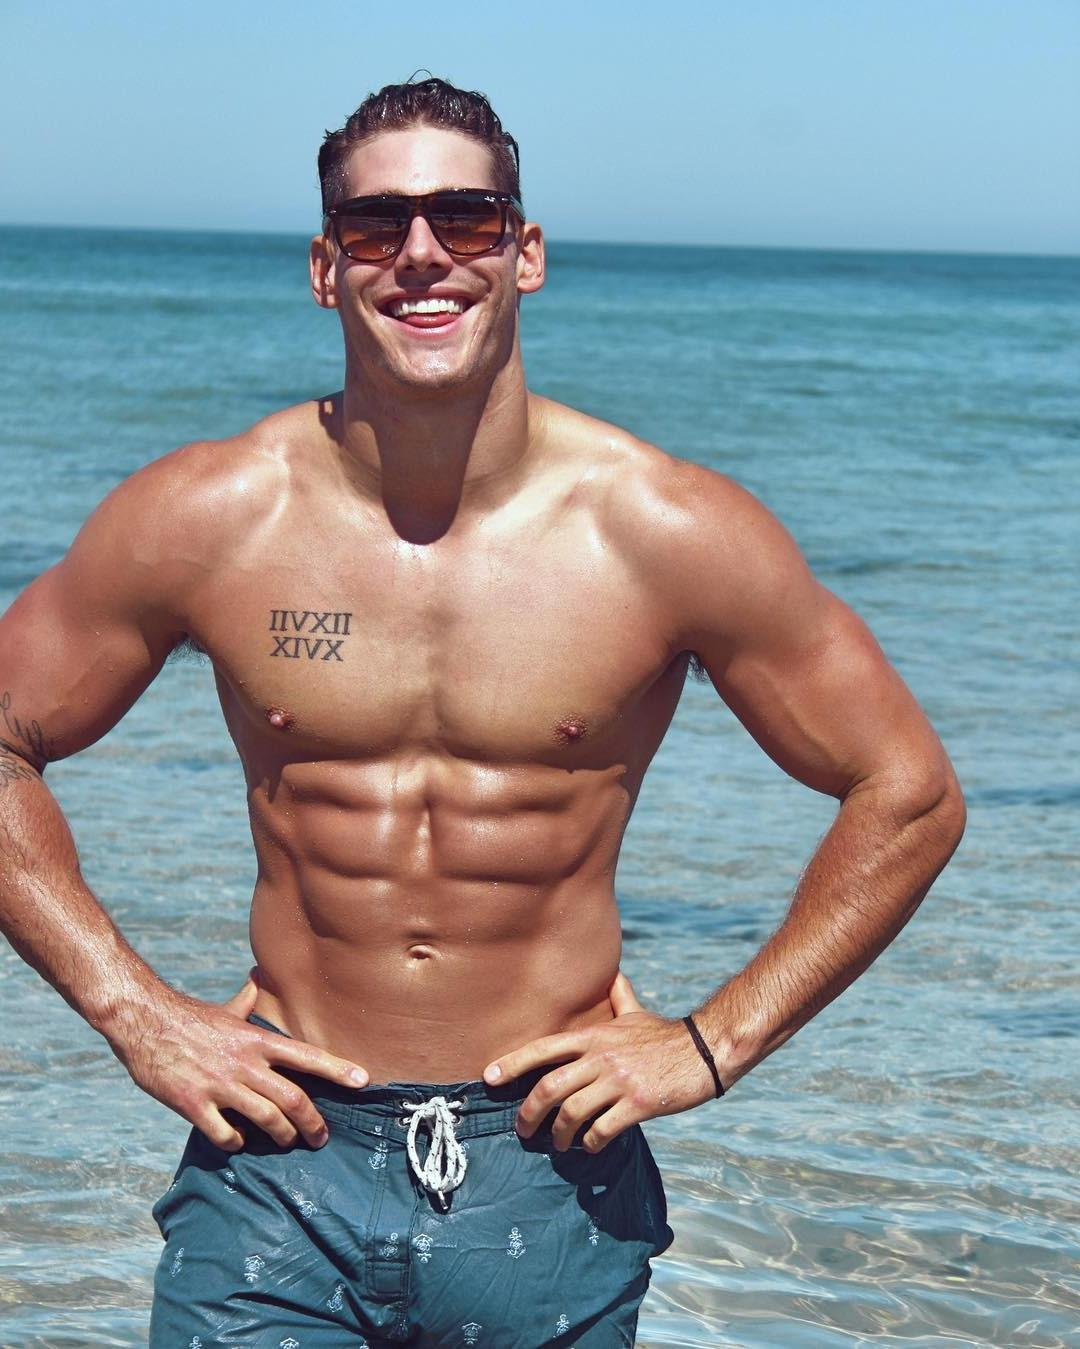 fit-sun-tanned-shirtless-body-sixpack-abs-cute-guy-smiling-sunglasses-sea